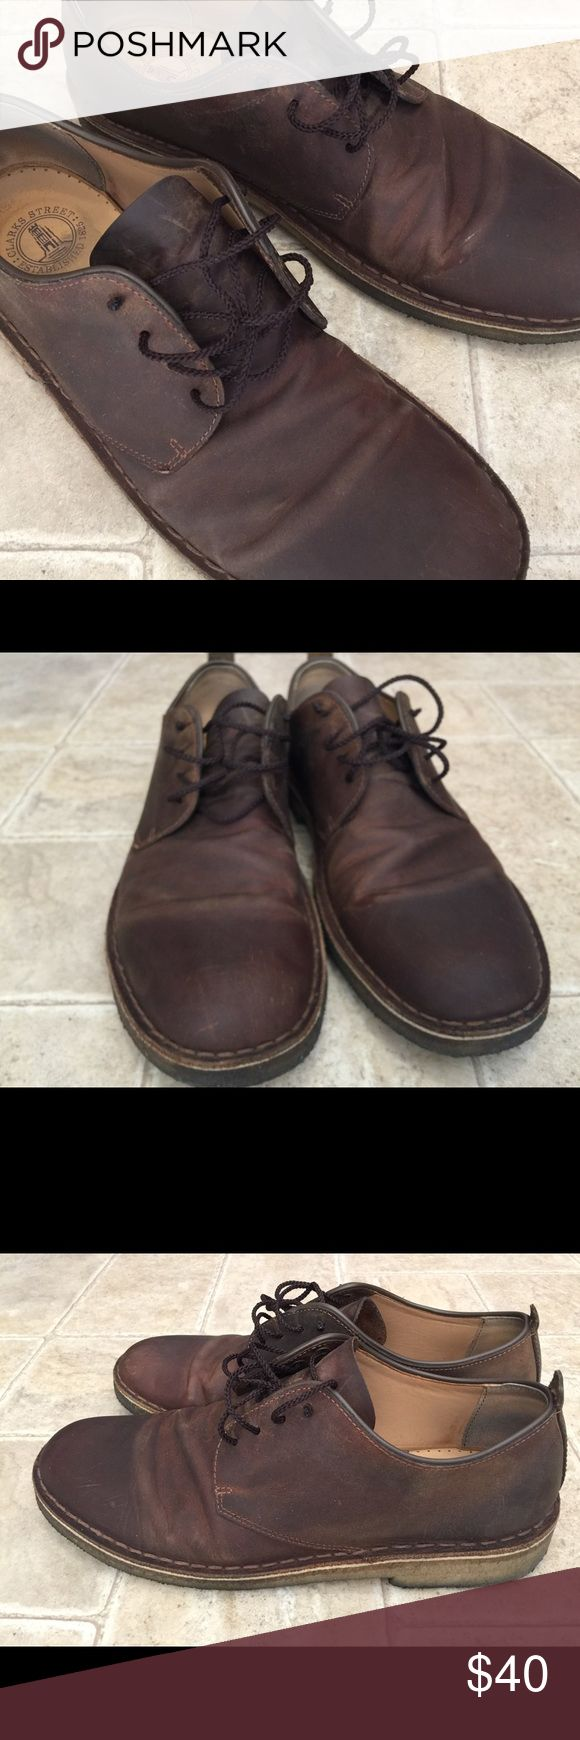 Clark's desert London Beeswax Leather. Size 11 D Clark's desert London beeswax leather men's shoes size 11. Lightly used and well cared for. Clarks Shoes Oxfords & Derbys